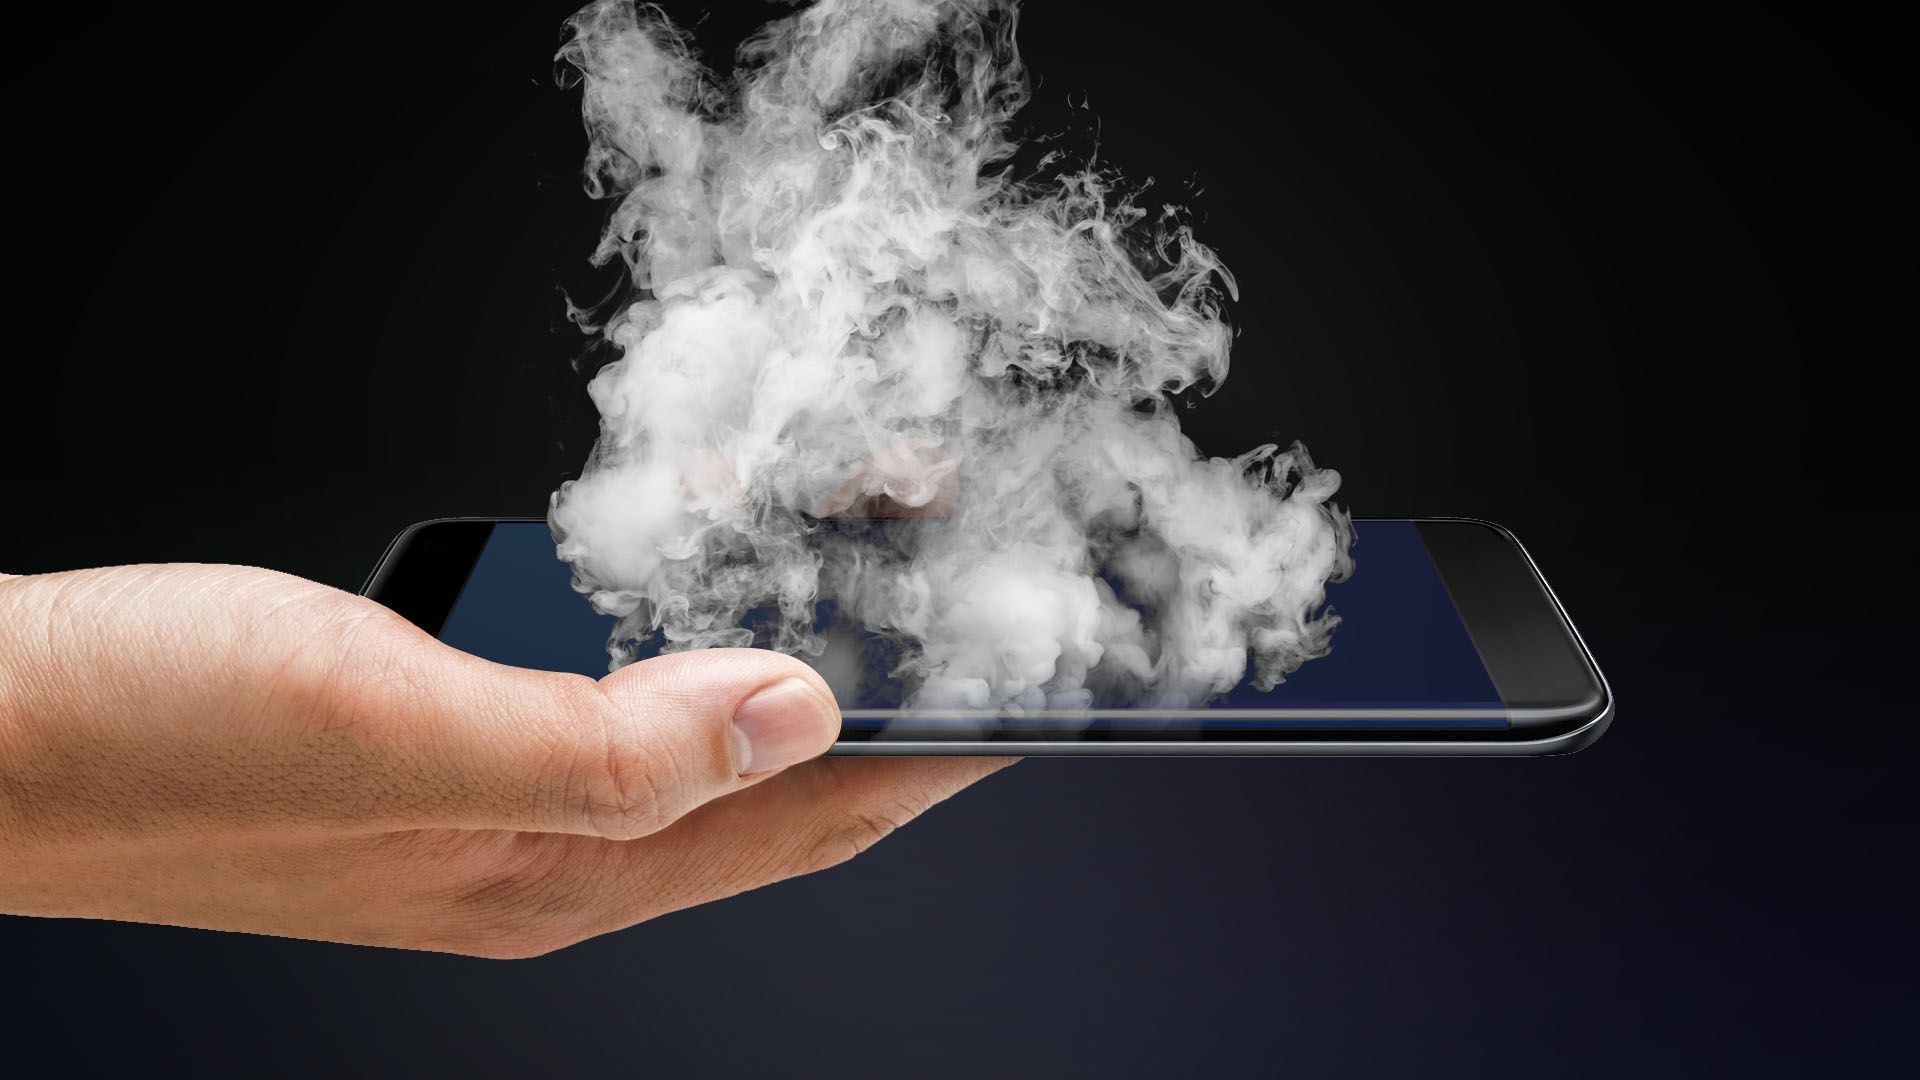 Should You Be Worried About Your iPhone Exploding?